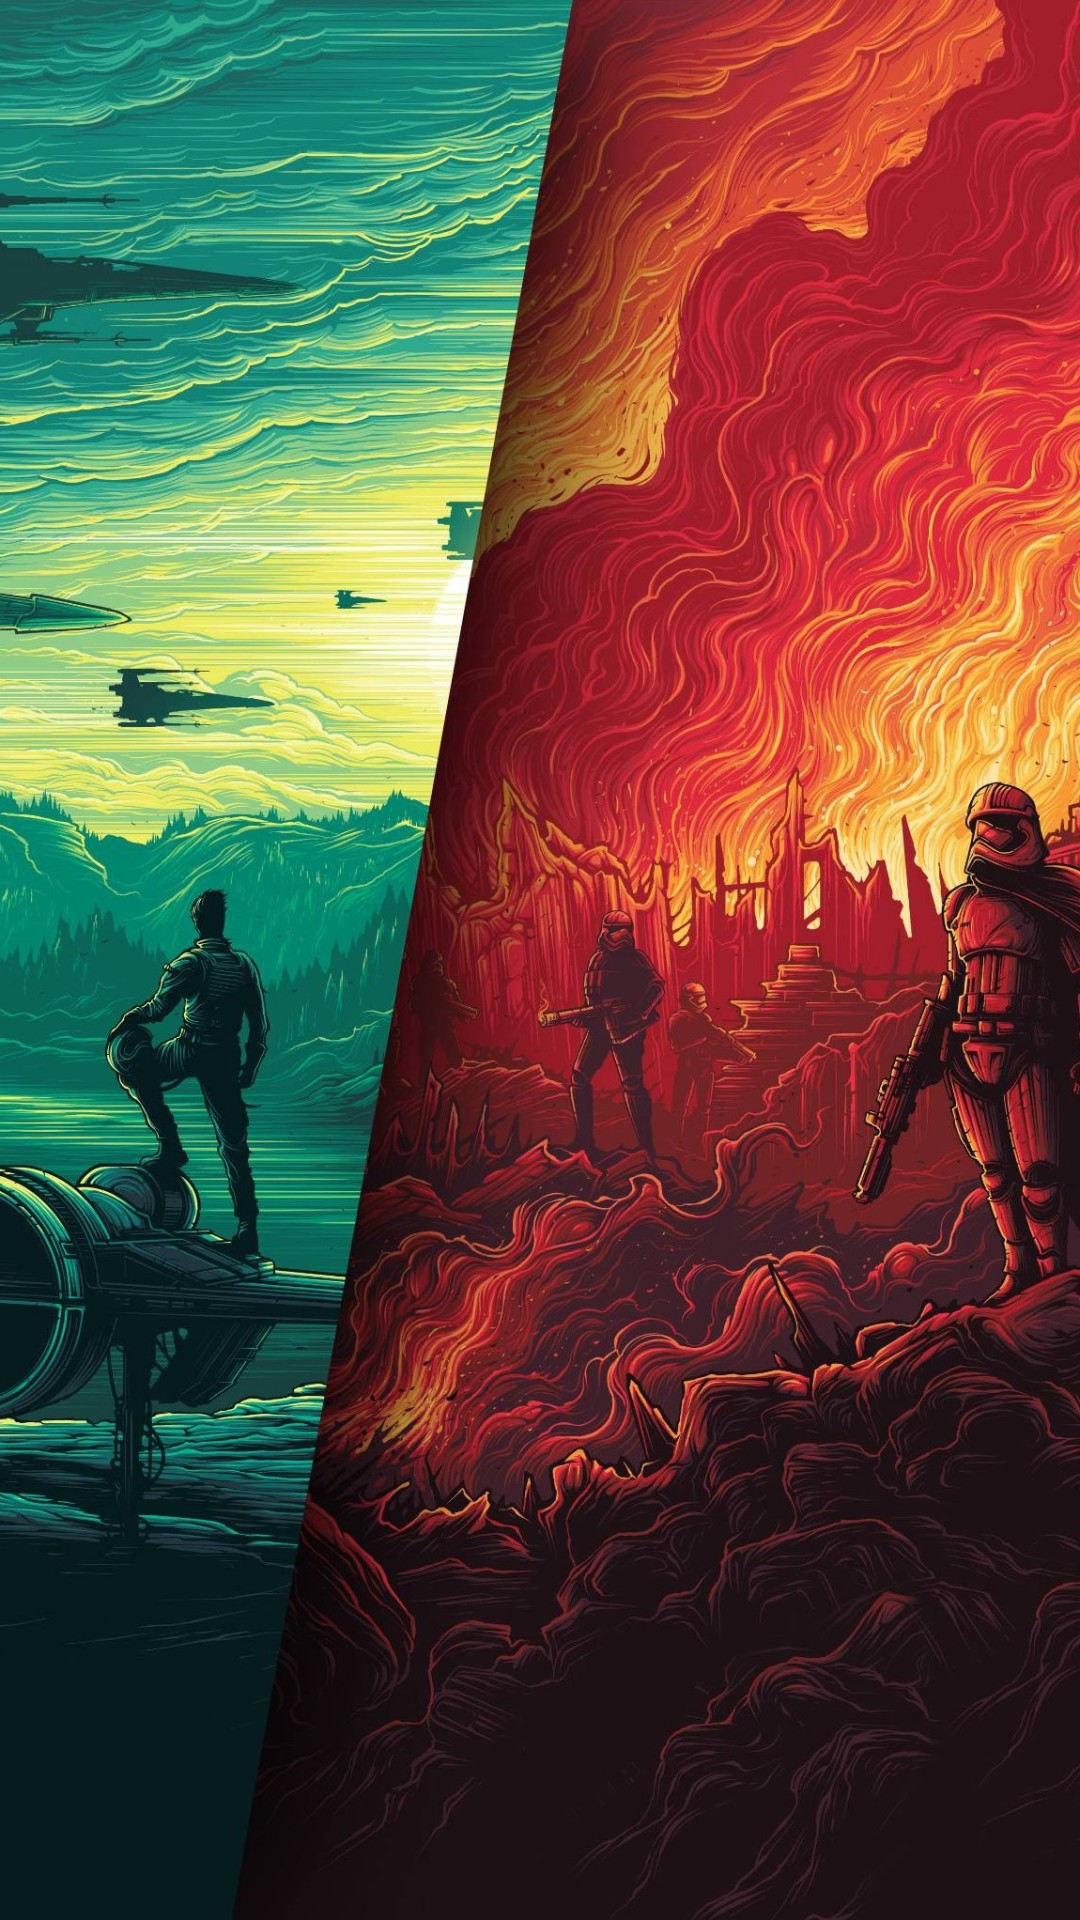 Star Wars Best Htc One Wallpapers Free And Easy To Download